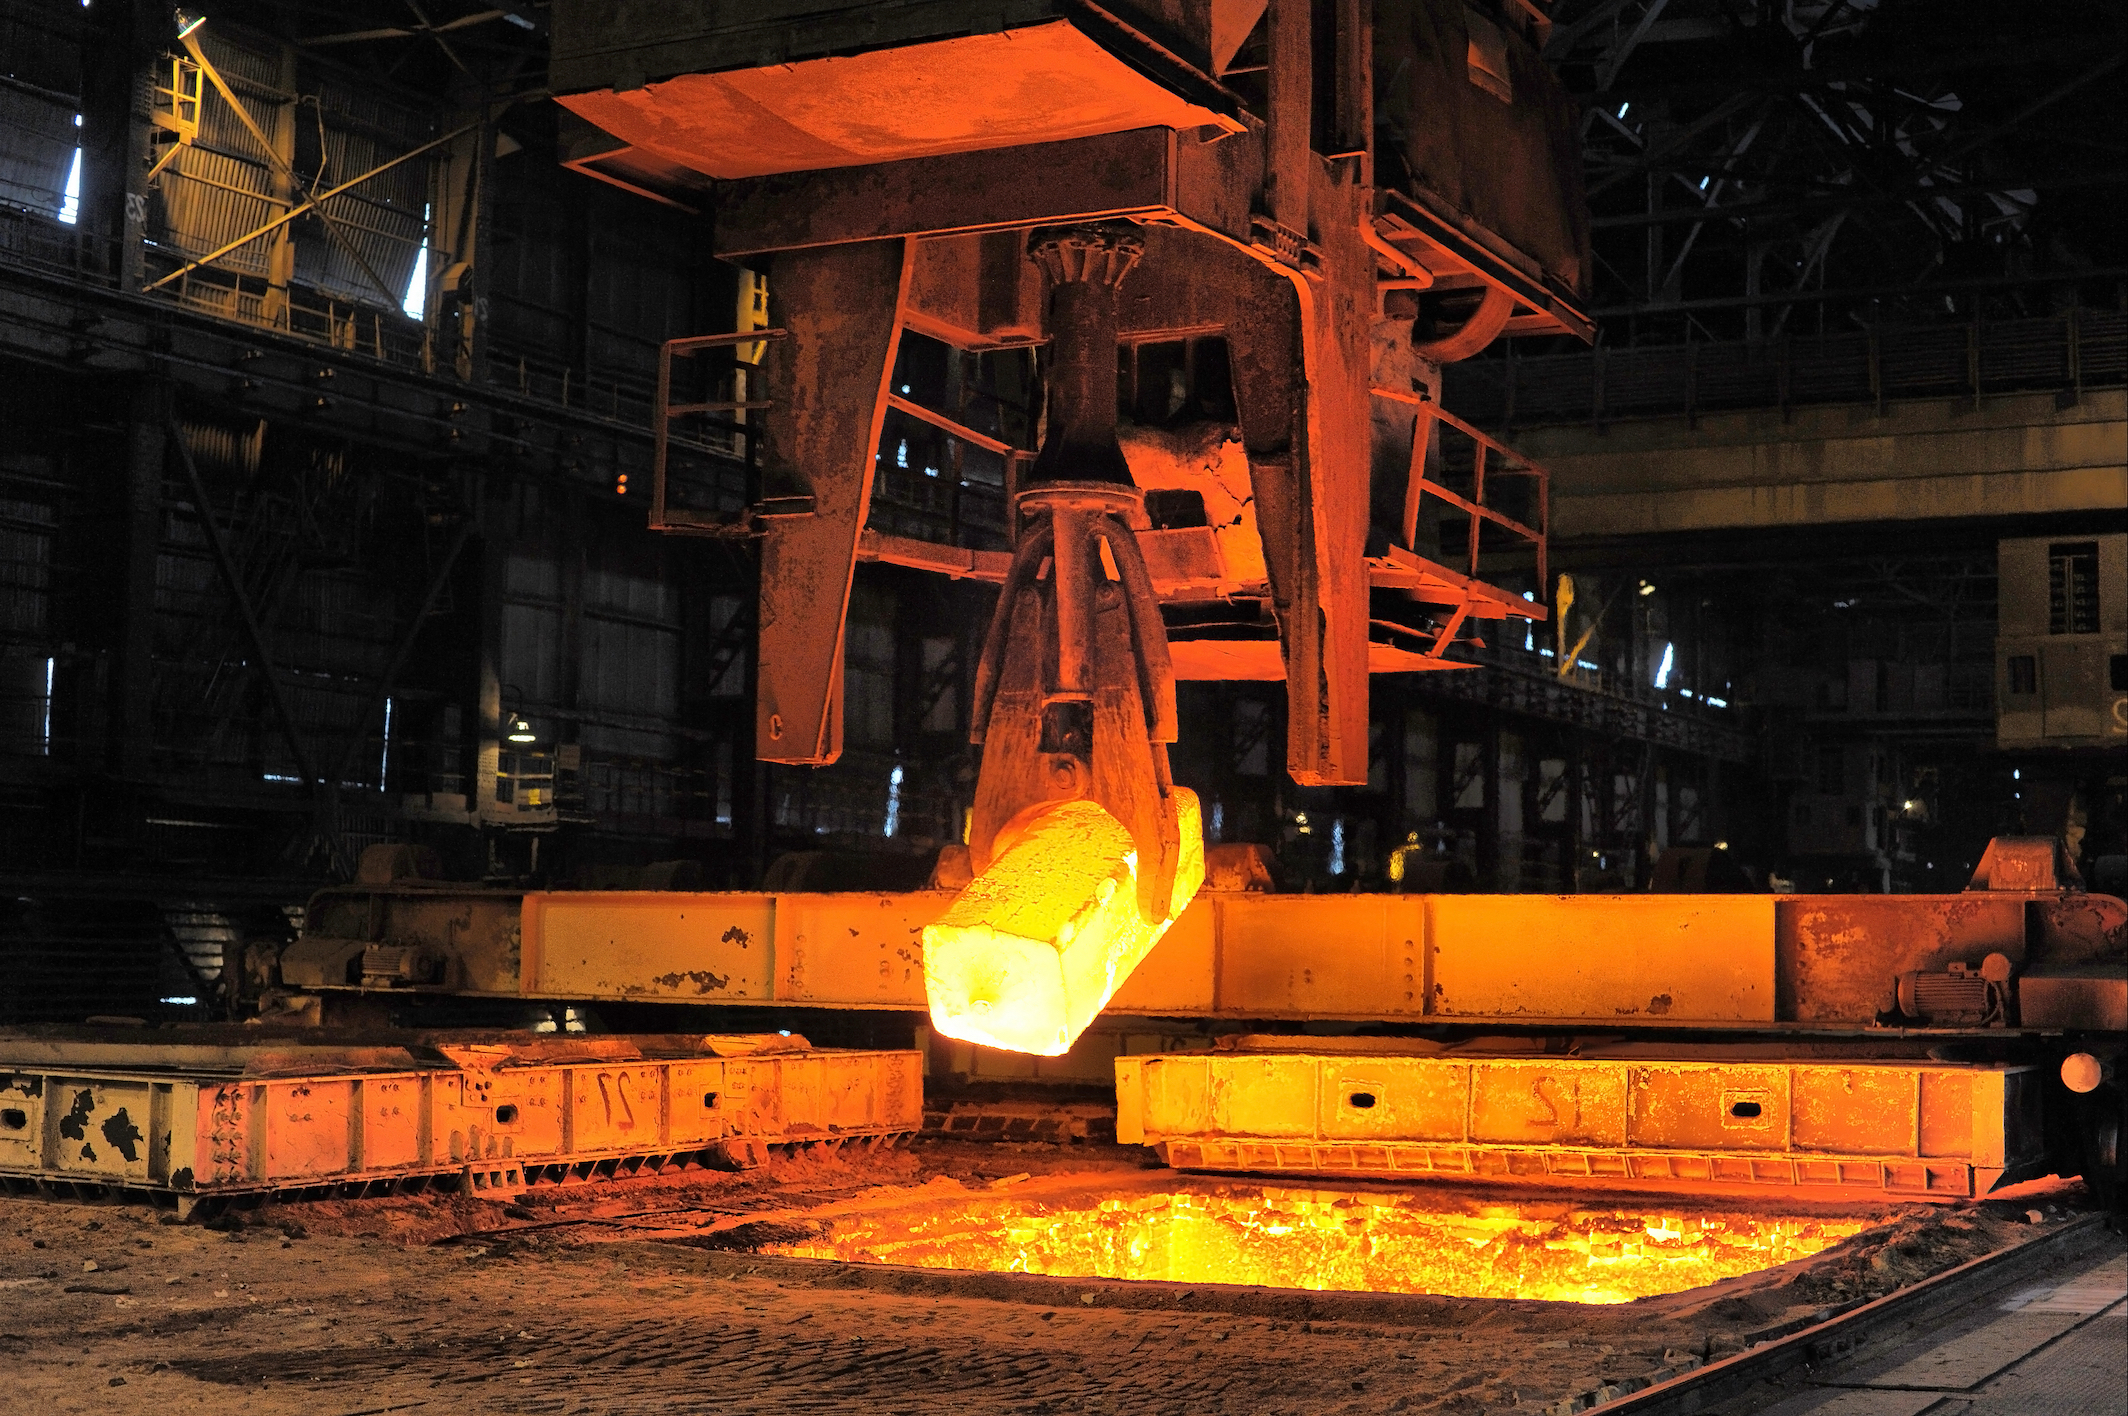 Heated steel being removed from a furnace